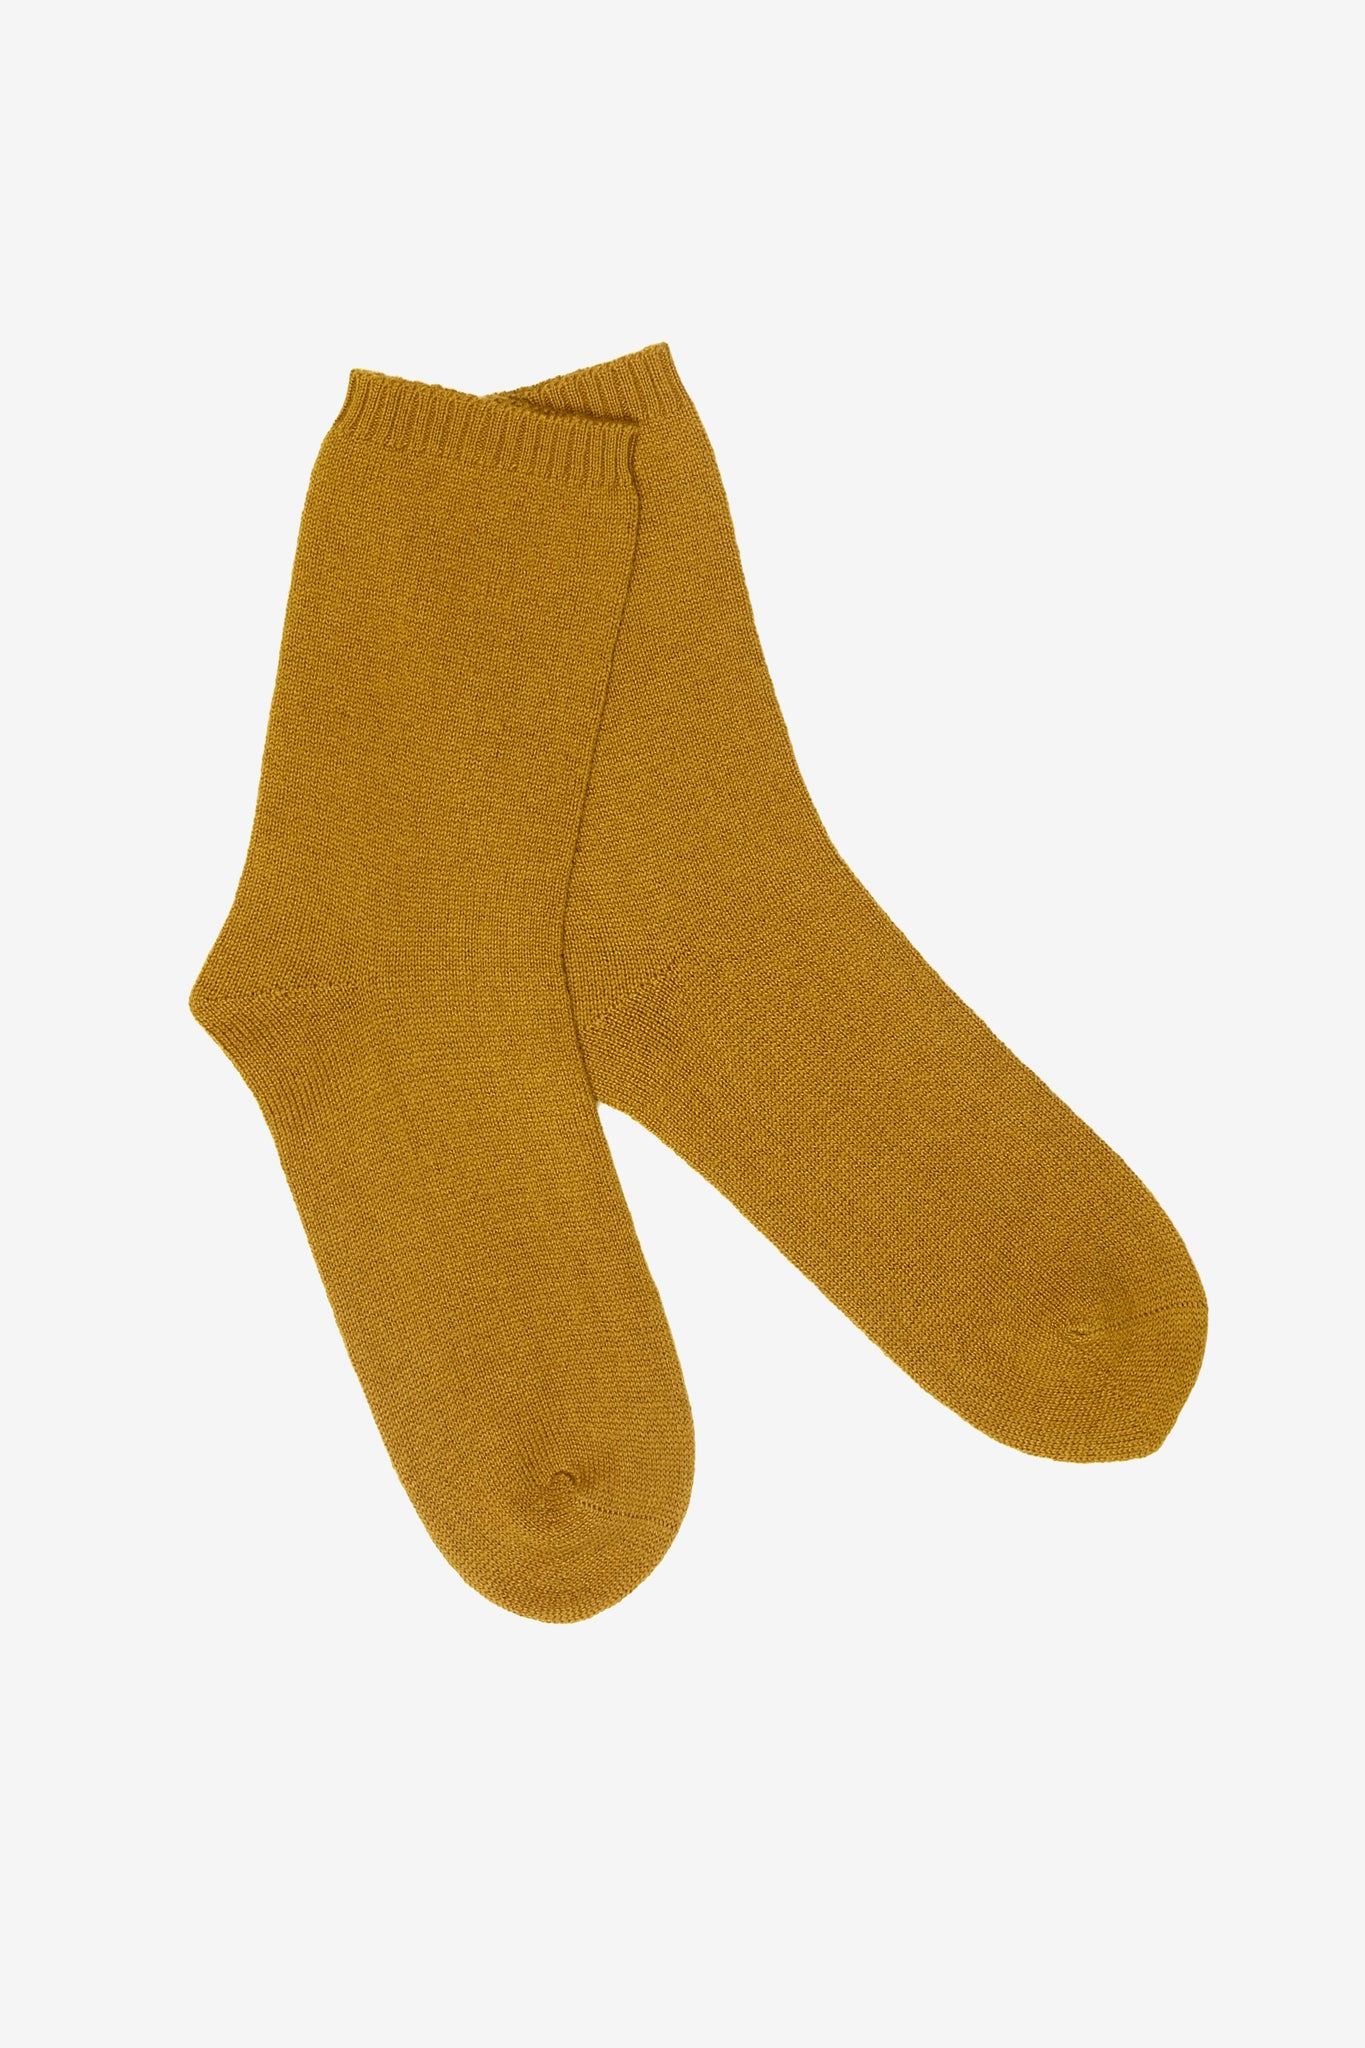 Ulla cashmere lounge socks in yellow